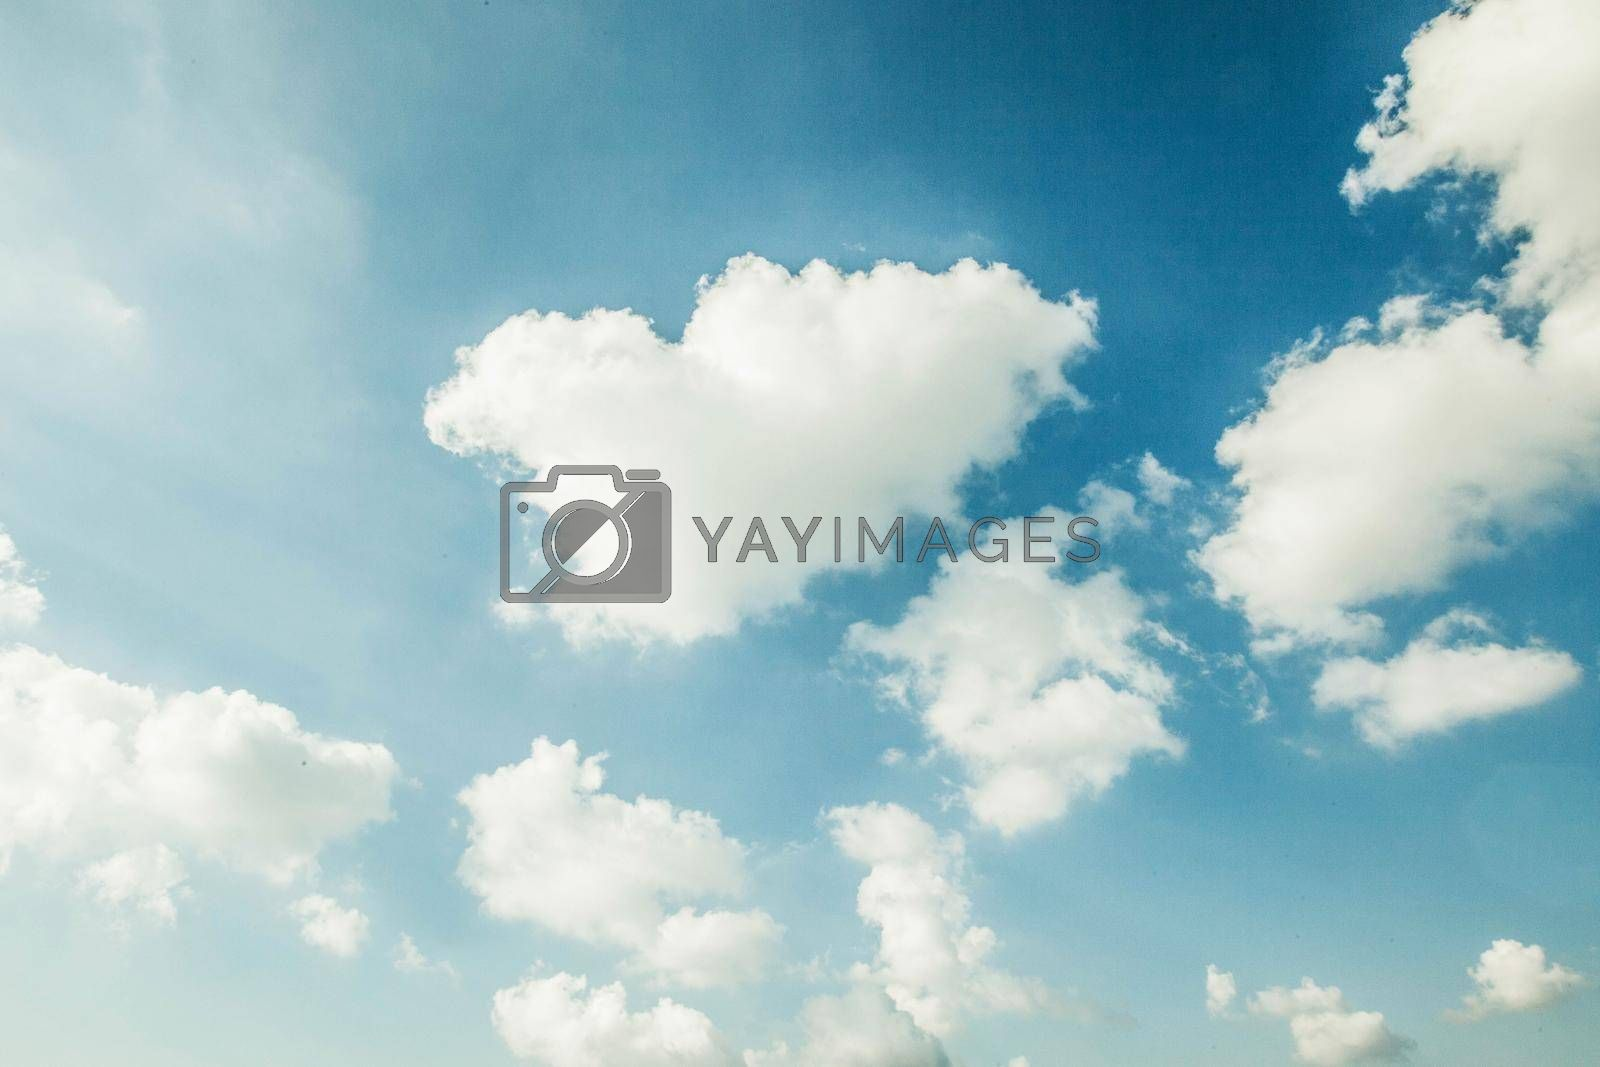 Royalty free image of Blue sky with clouds by Yellowj